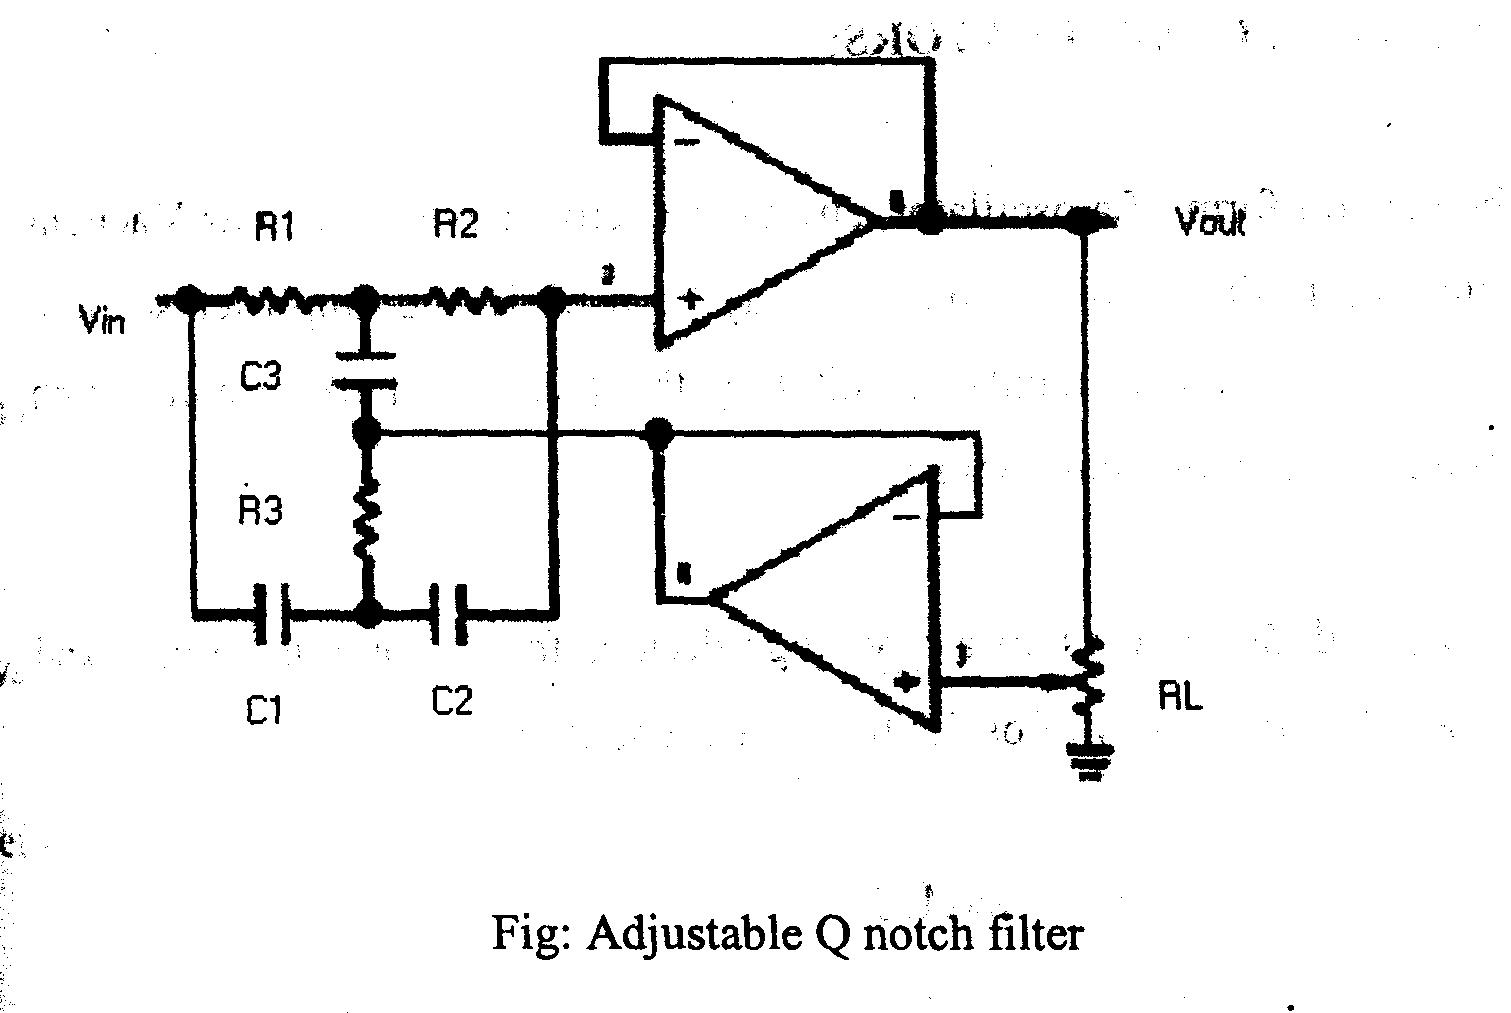 A Media To Get All Datas In Electrical Science Phase Shift Frequency Changer Circuit An Interesting Change The High Q Twin T Occurs When Components Are Not Exactly Matched Ratio